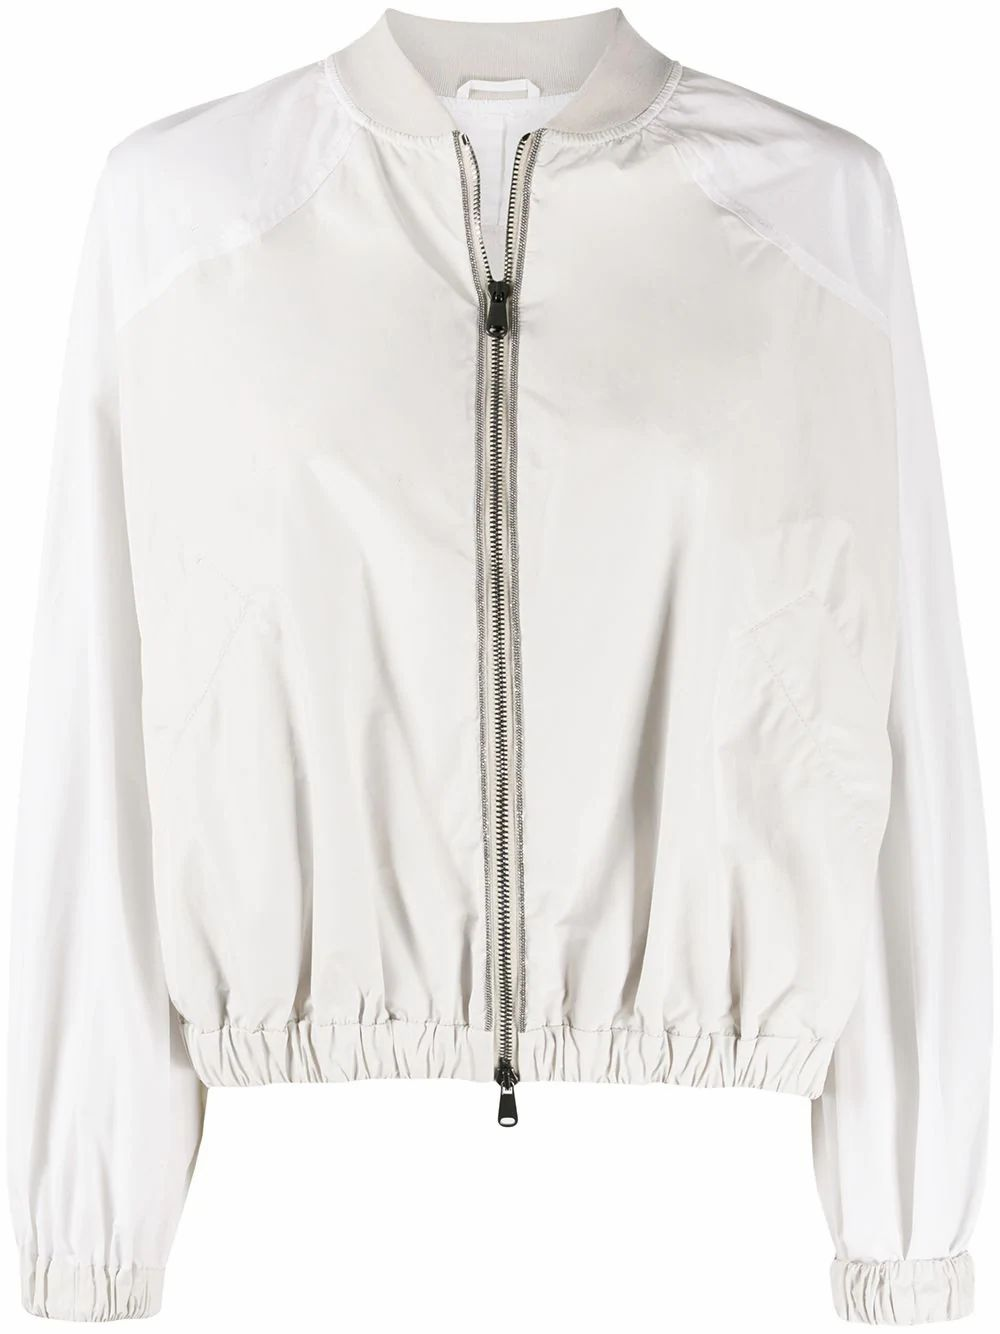 Brunello Cucinelli BRUNELLO CUCINELLI WOMEN'S WHITE POLYESTER OUTERWEAR JACKET